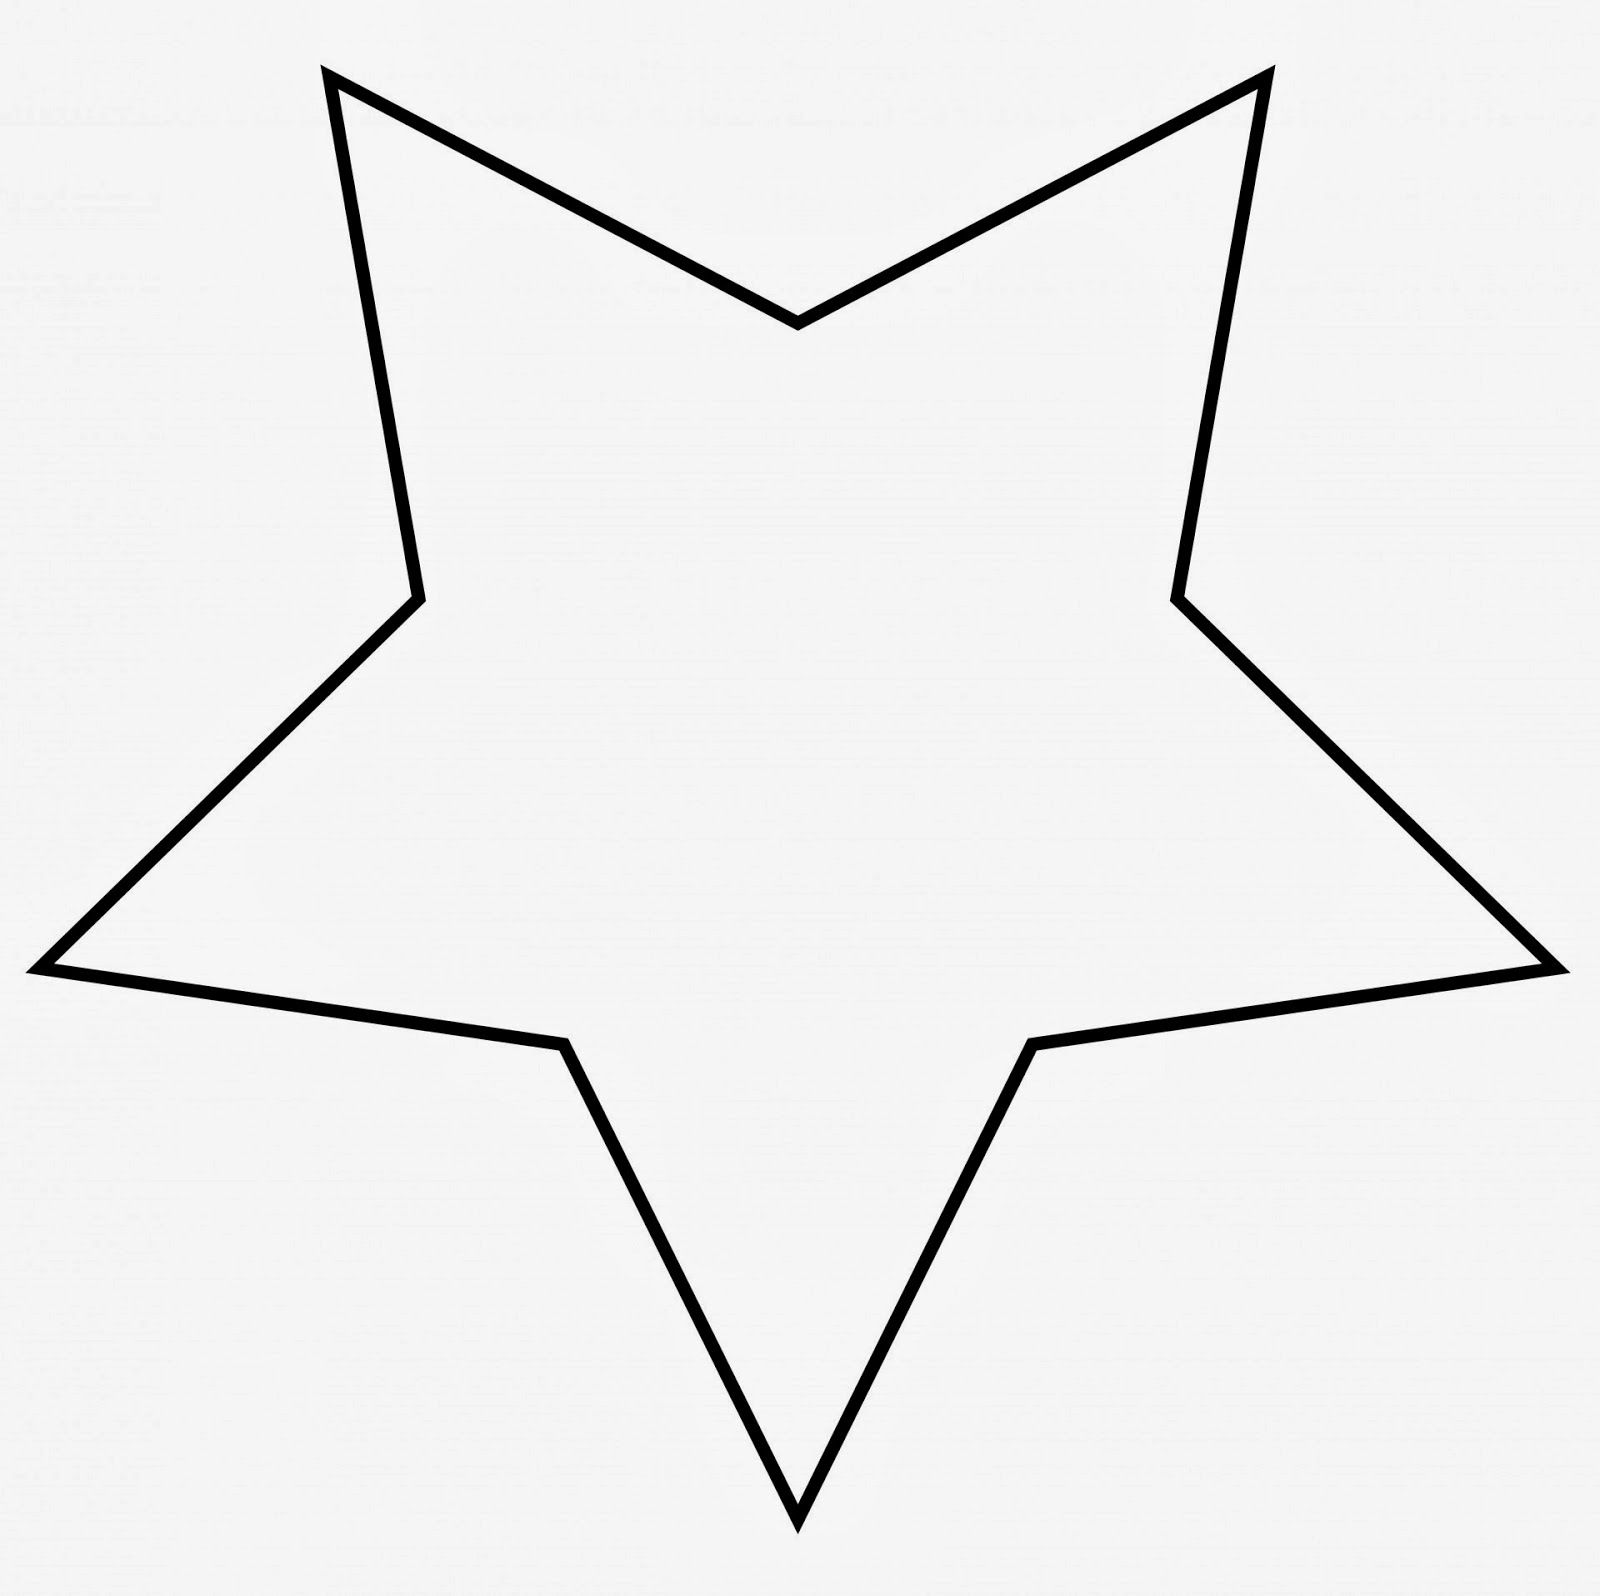 12 Inch Star Template Star Template Printable Star Template Printable Image